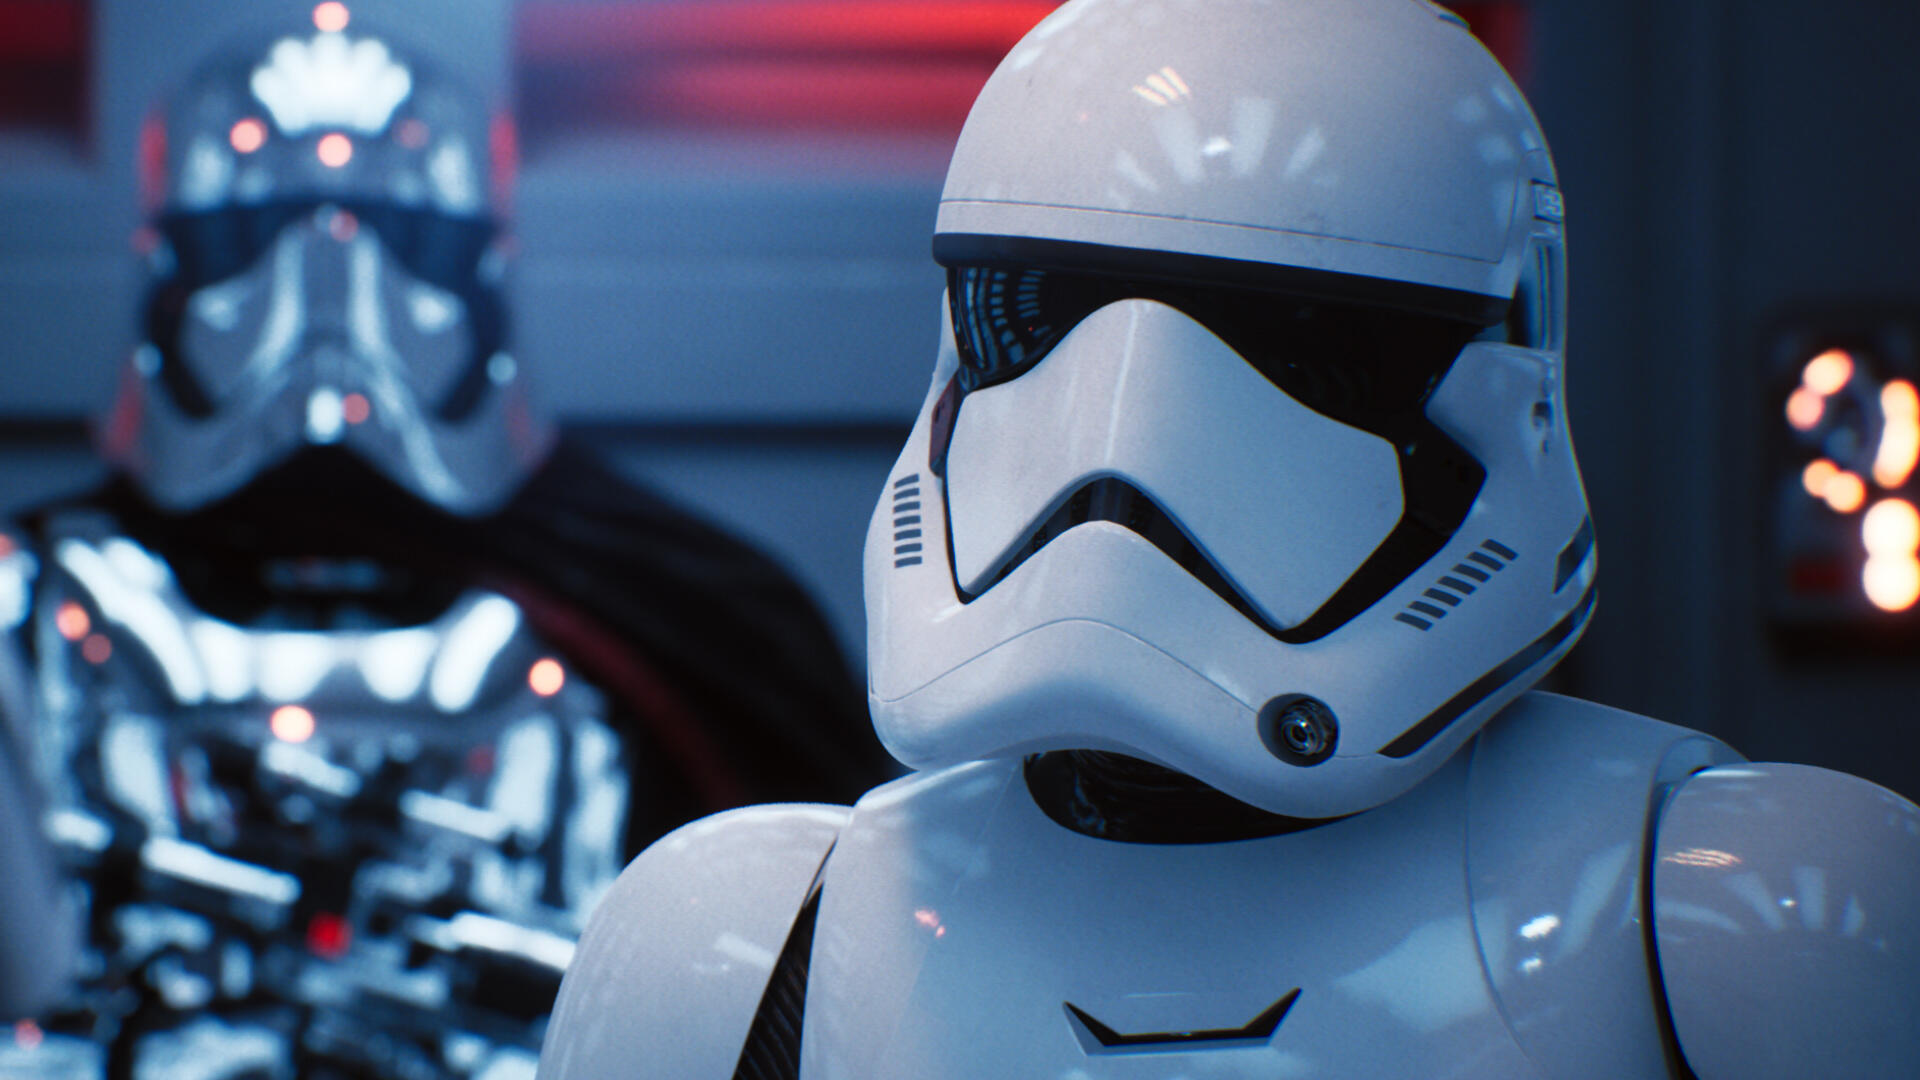 What the Heck is Ray Tracing and Why Does it Matter for Next-Generation Consoles? An Explainer